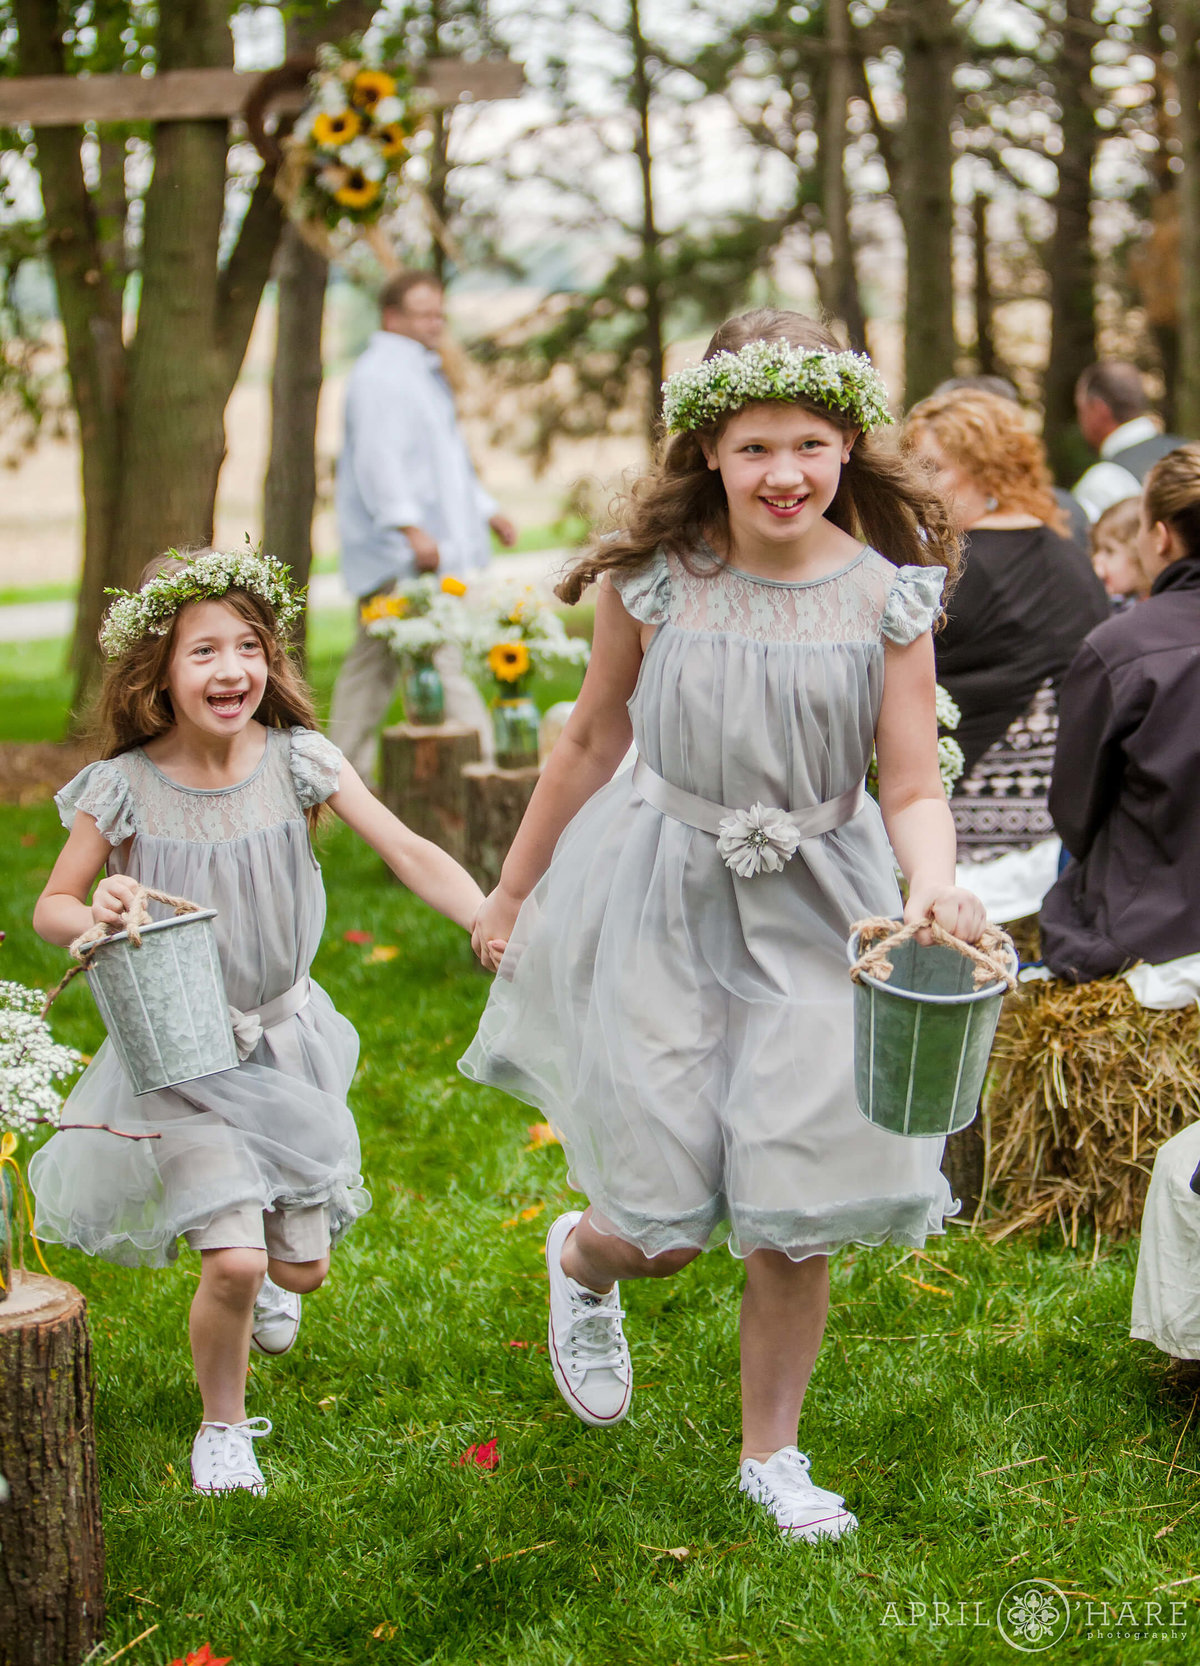 Cute flower girls wearing flower crowns run down the aisle at a private Nebraska Farm Wedding